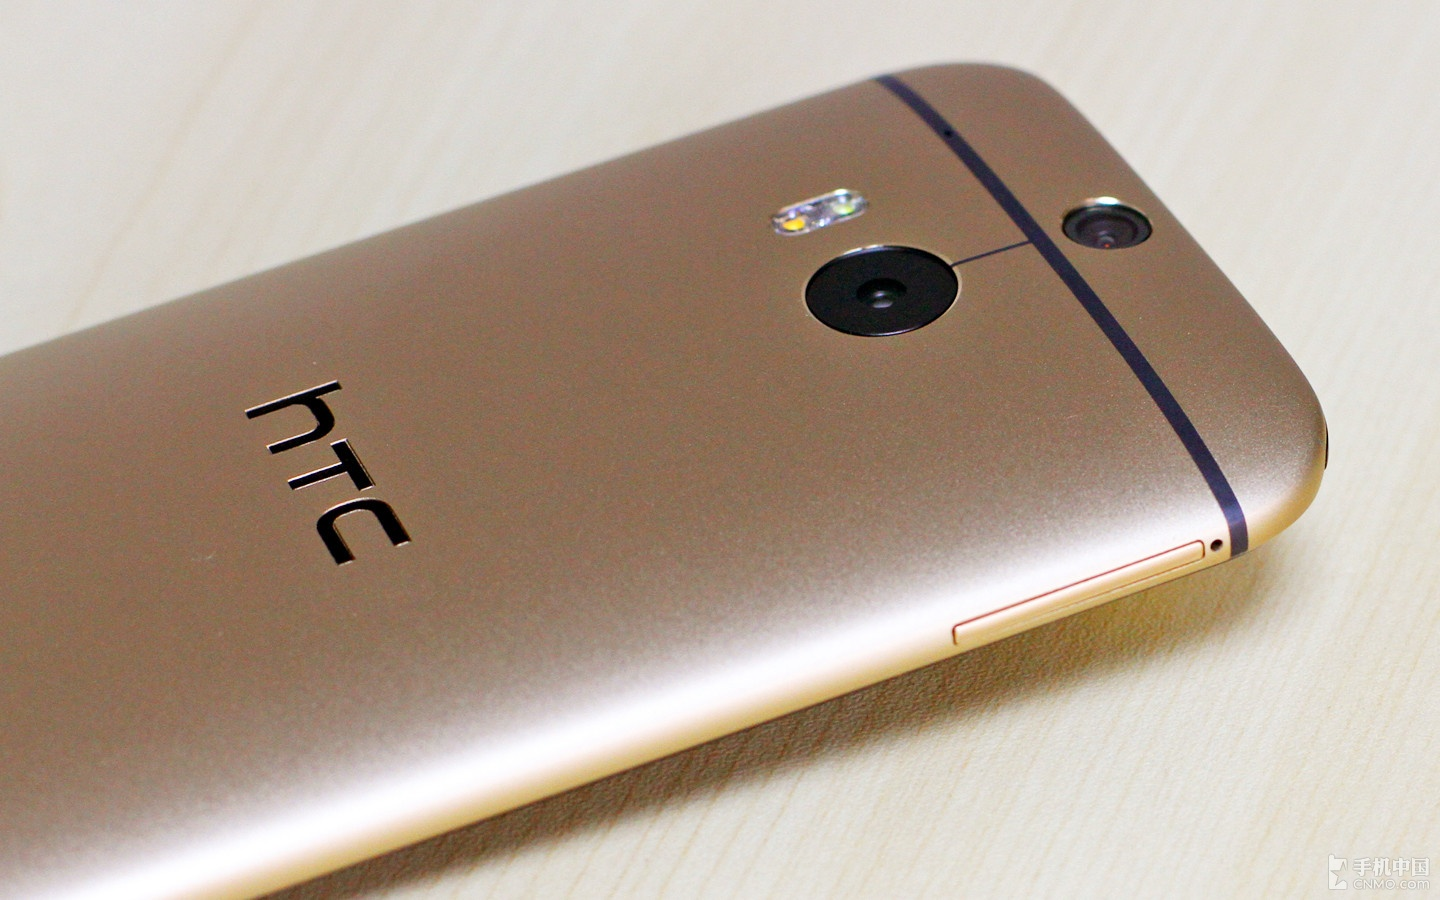 how to put sim in htc one m8